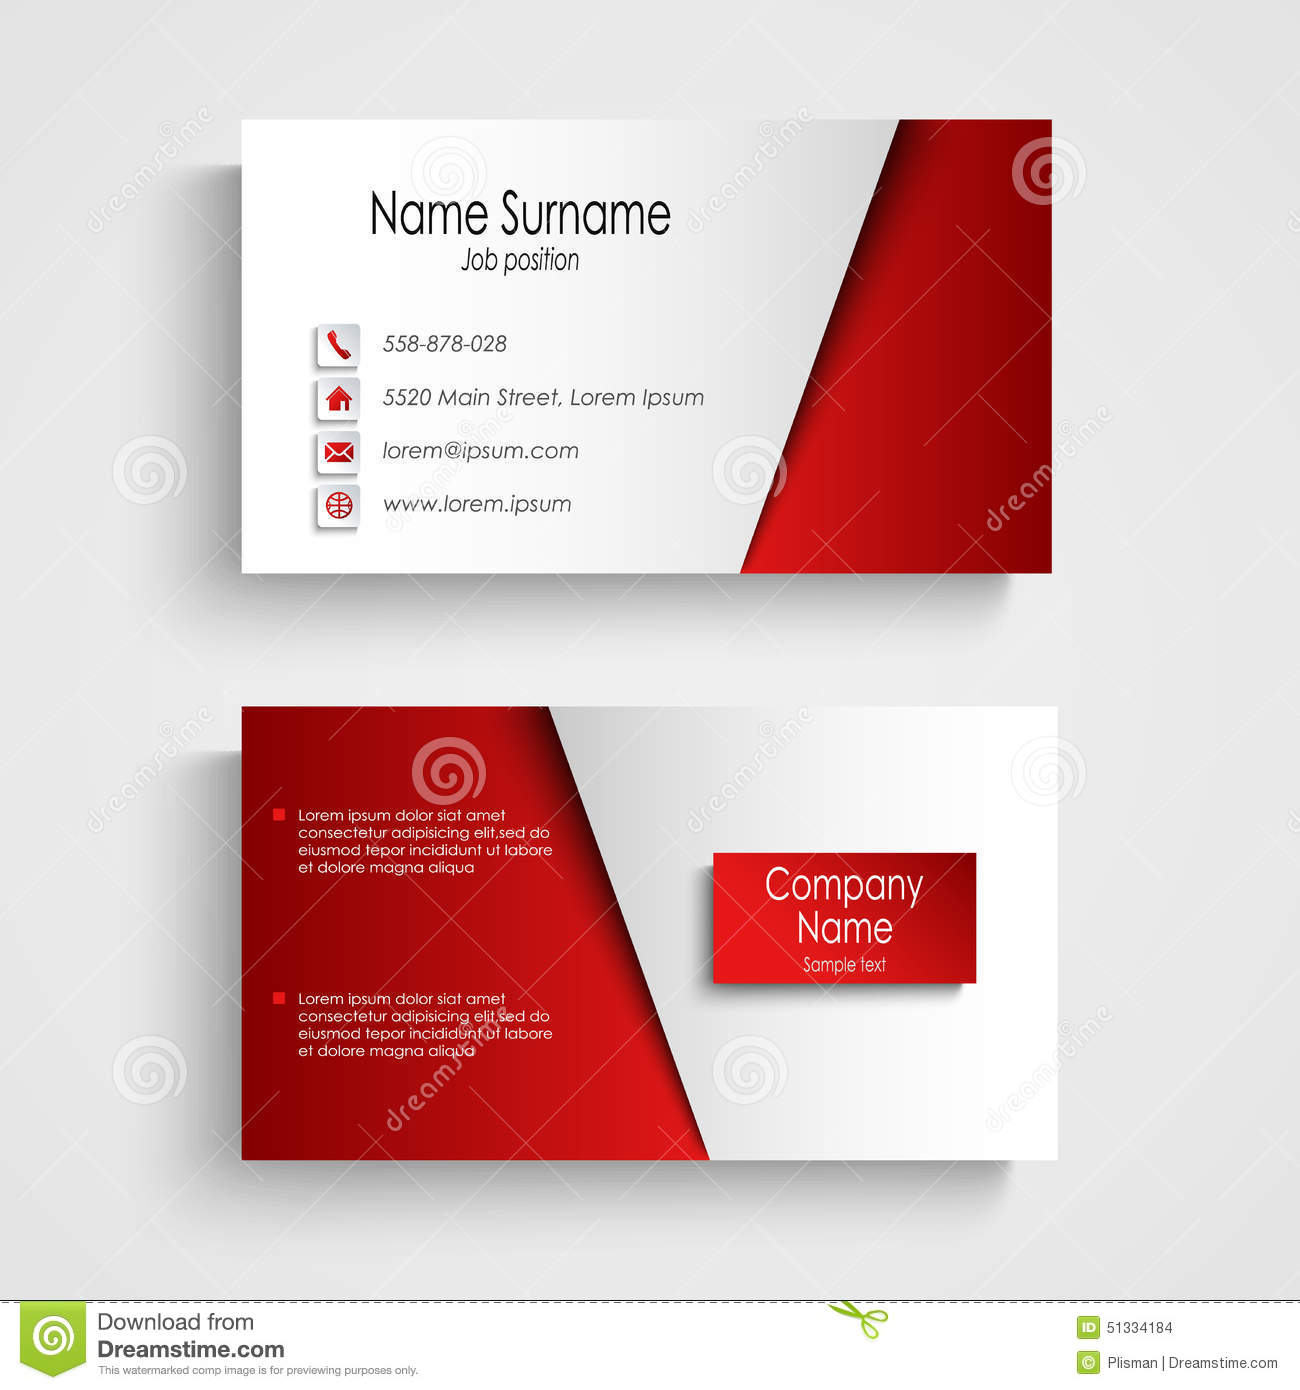 Red business cards explore katiescollect business cards stores board black and red business cards on pinterest see more ideas about business cards cars and black magicingreecefo Choice Image